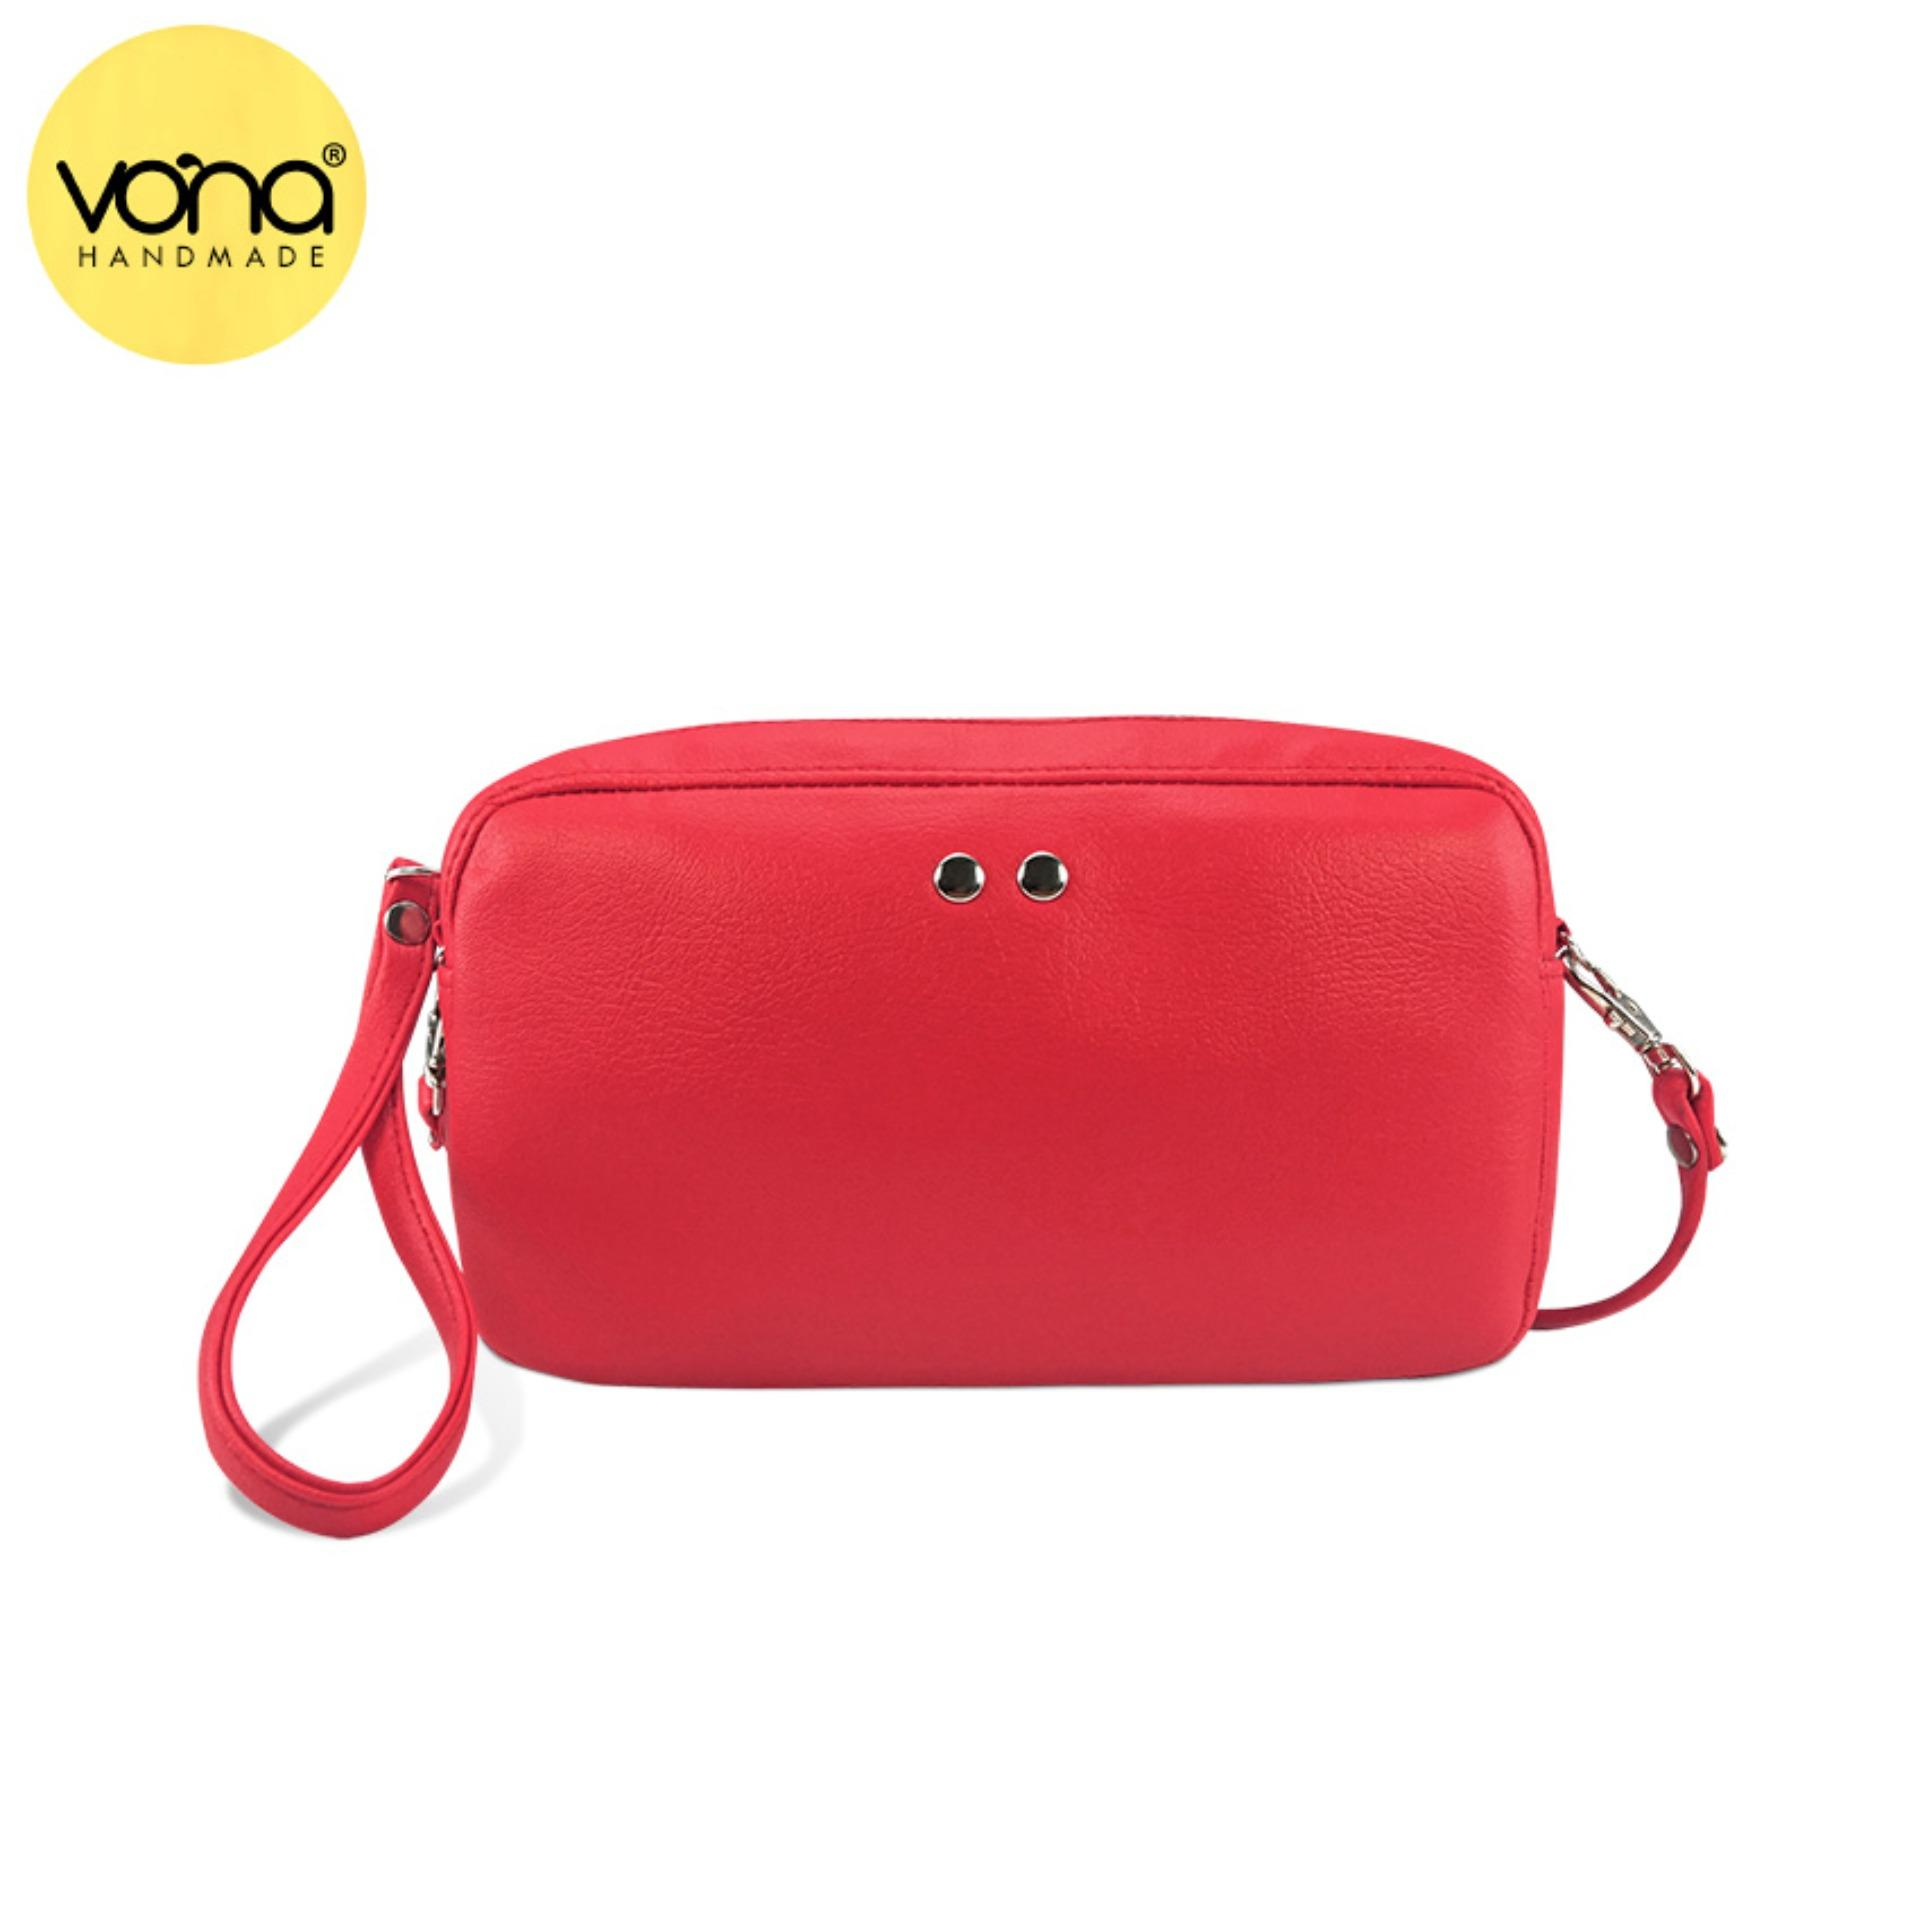 Vona Hopp Clutch Merah Clutch Sling Bag Mini Tas Selempang Bahu Ladies Pu Leather Promo Beli 1 Gratis 1